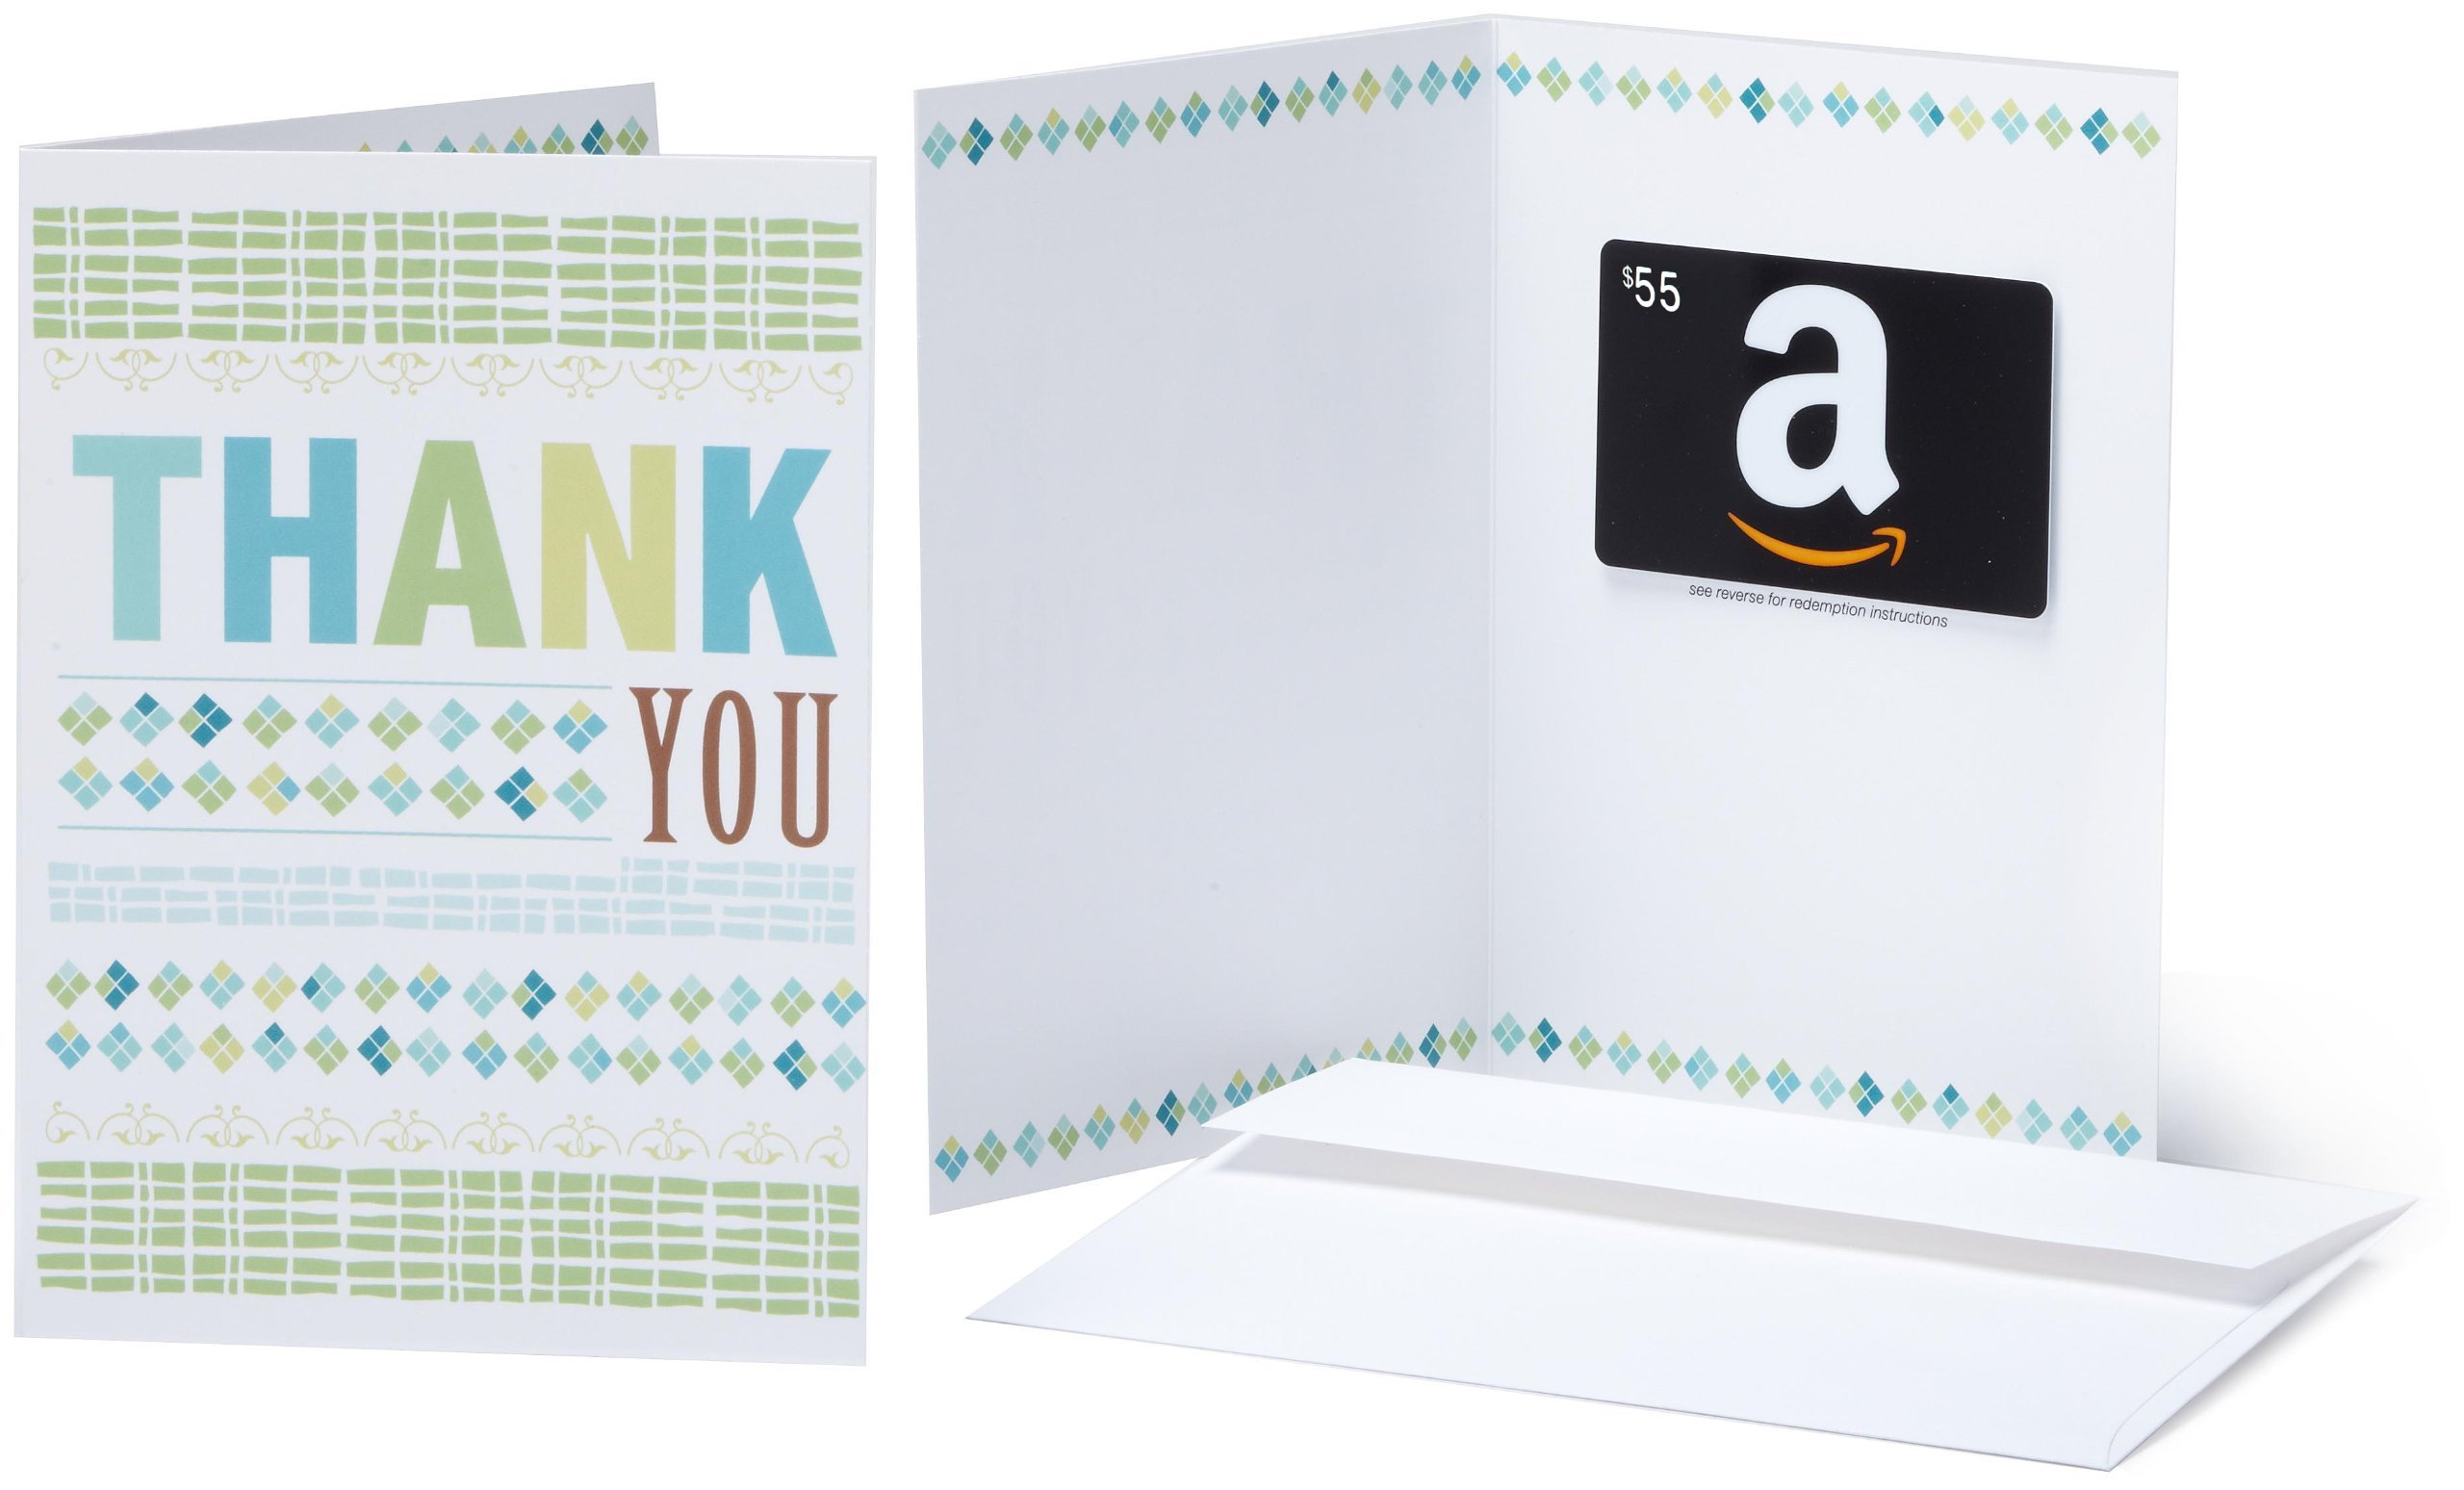 Amazon.com $55 Gift Card in a Greeting Card (Thank You Design)